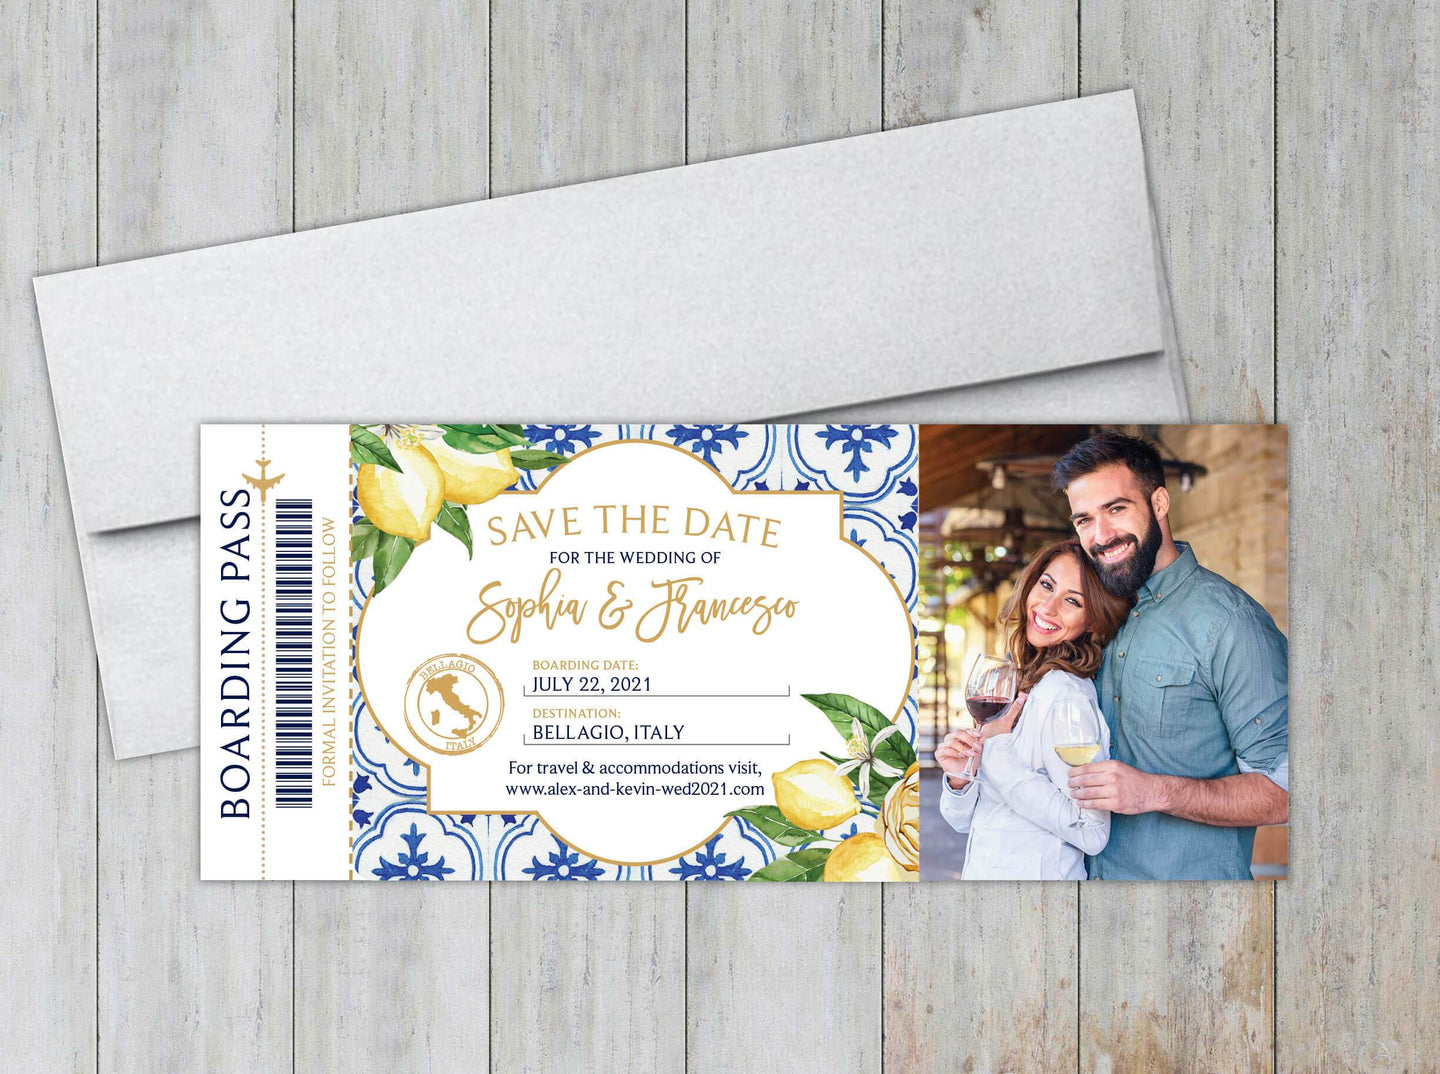 Lemons & Greenery Boarding Pass Save the Date